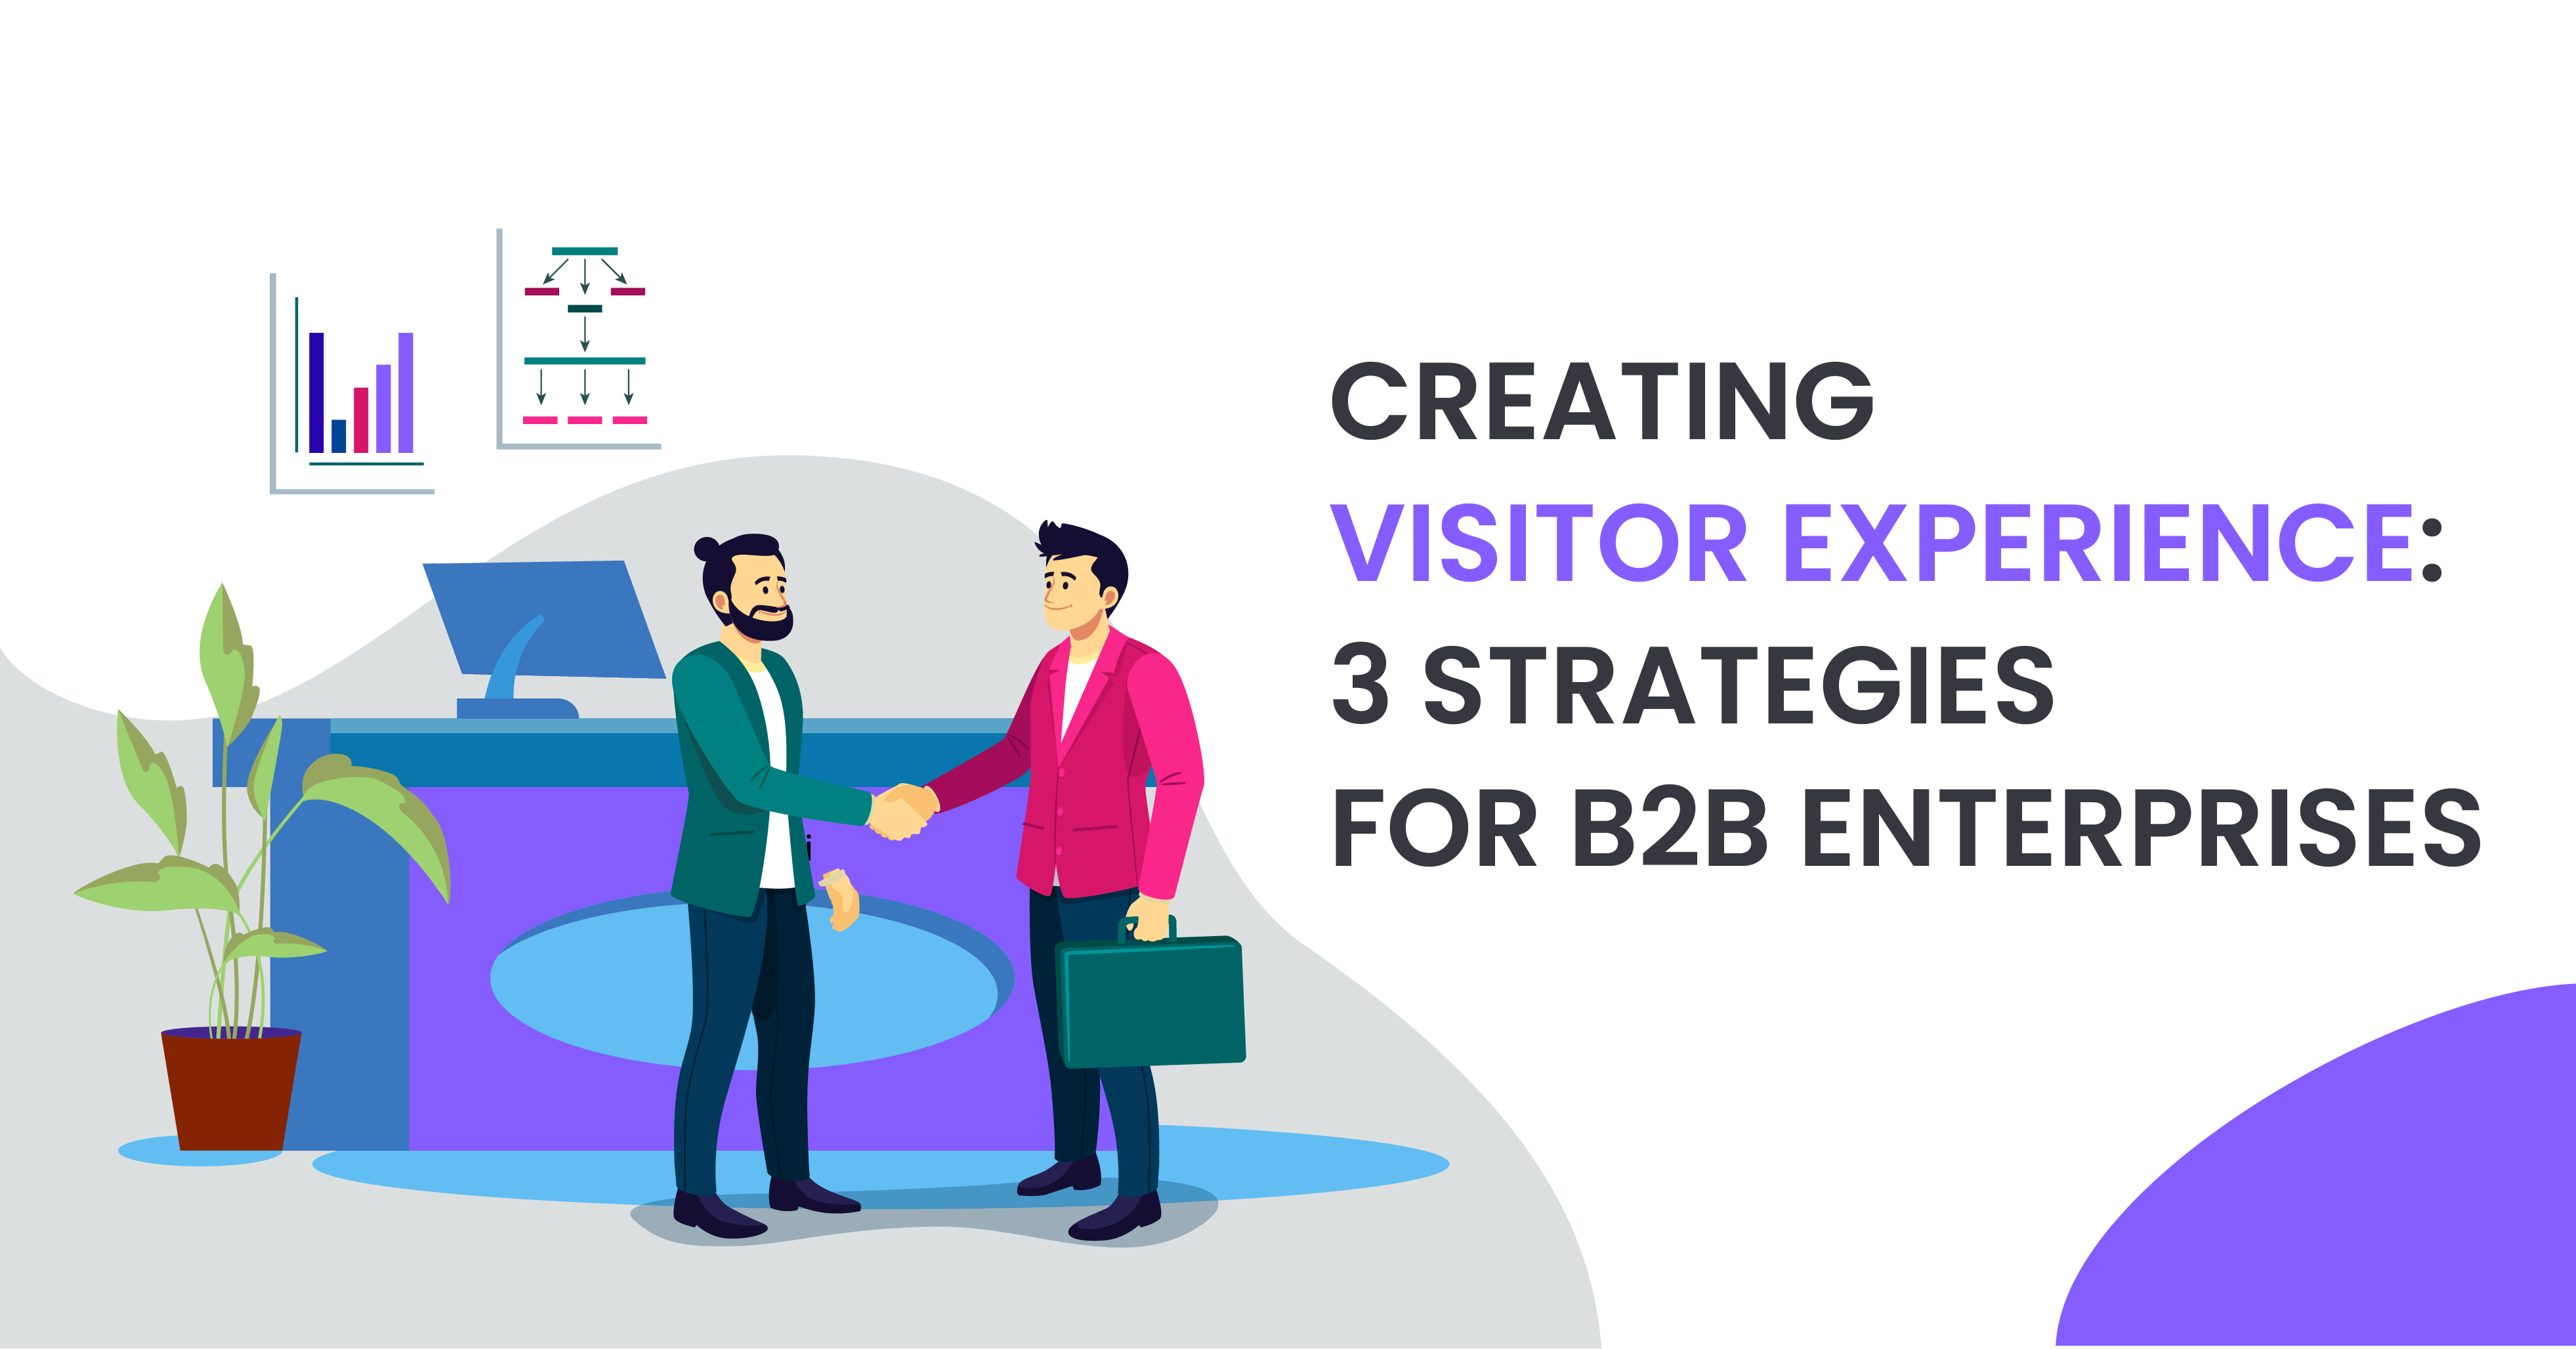 Creating Visitor Experience: 3 Strategies for B2B Enterprises